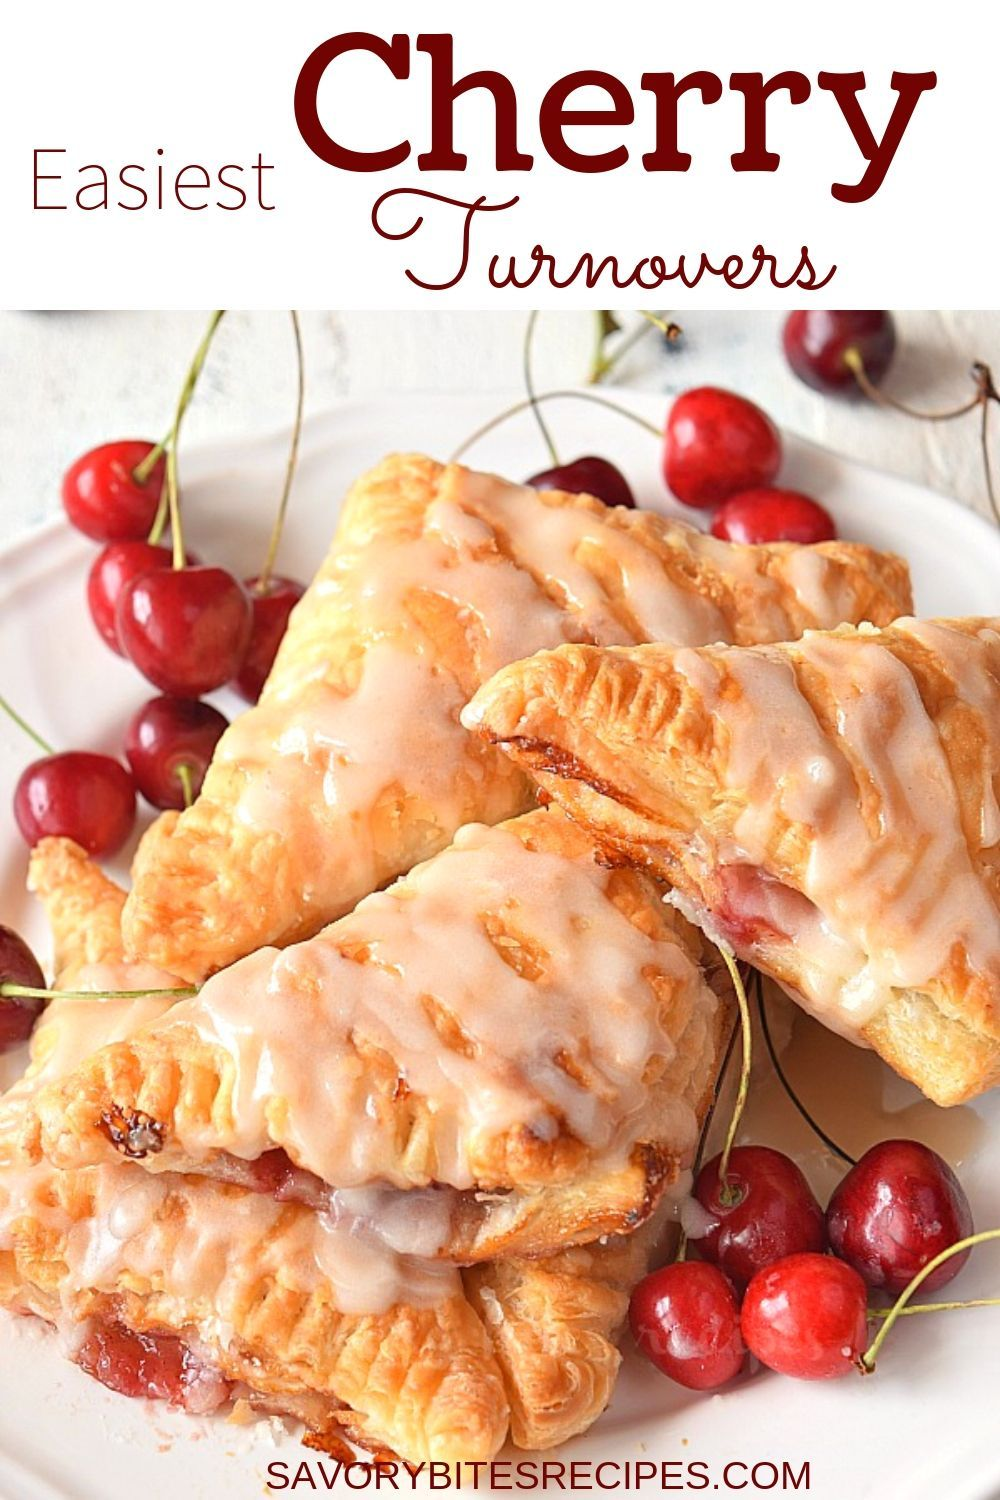 Easiest Cherry Turnovers! #frozenpuffpastry